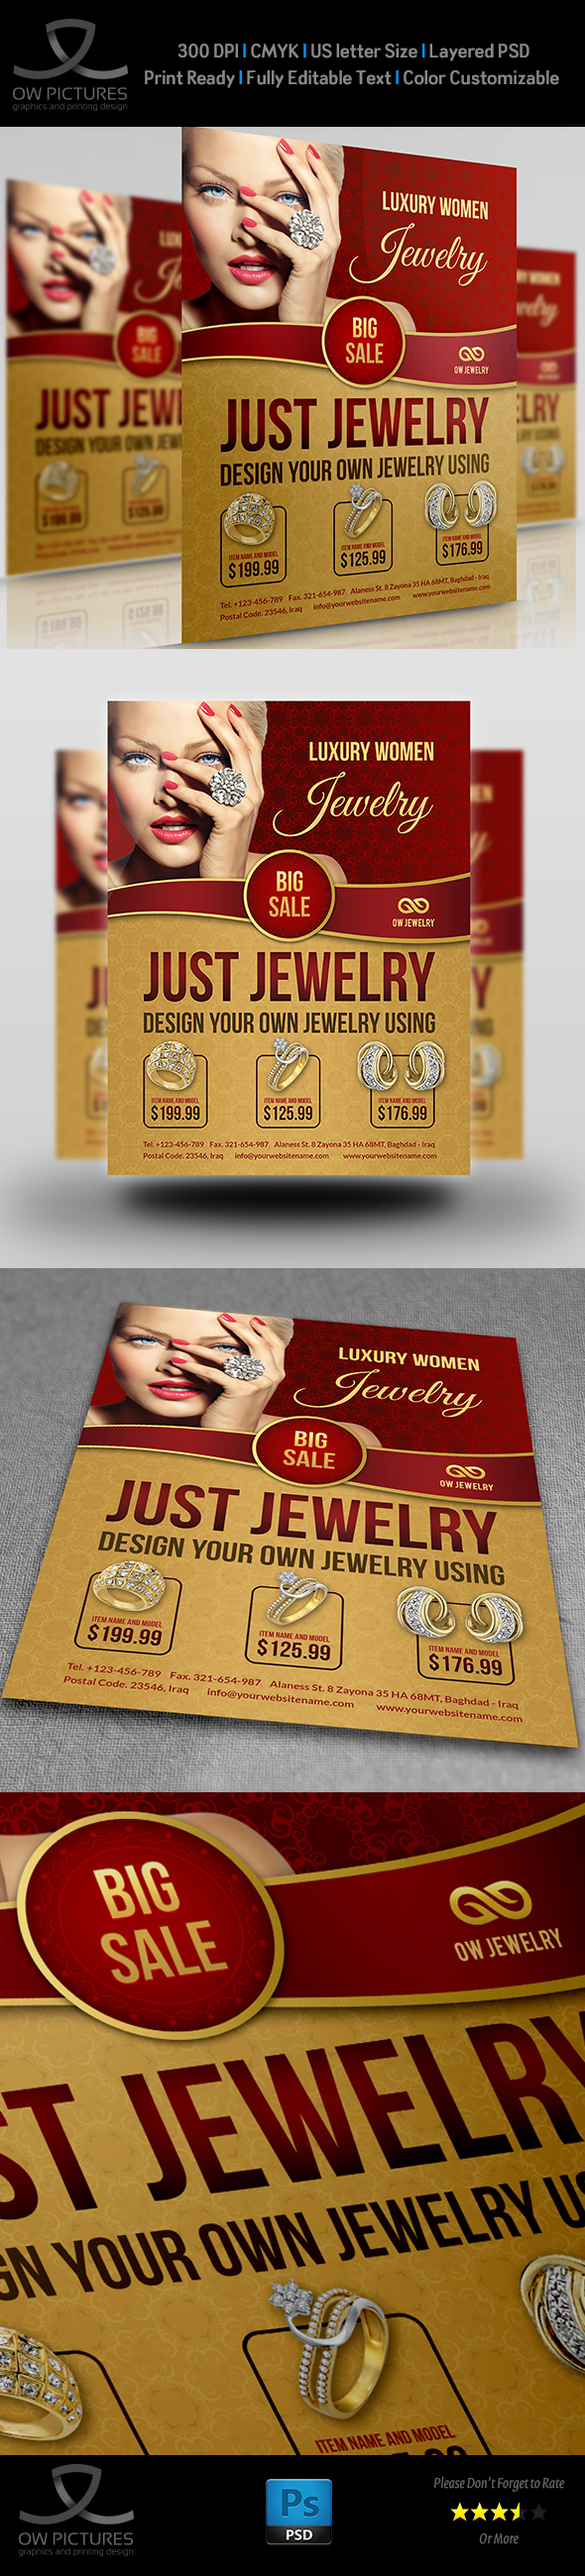 Jewelry Flyer Template On Behance